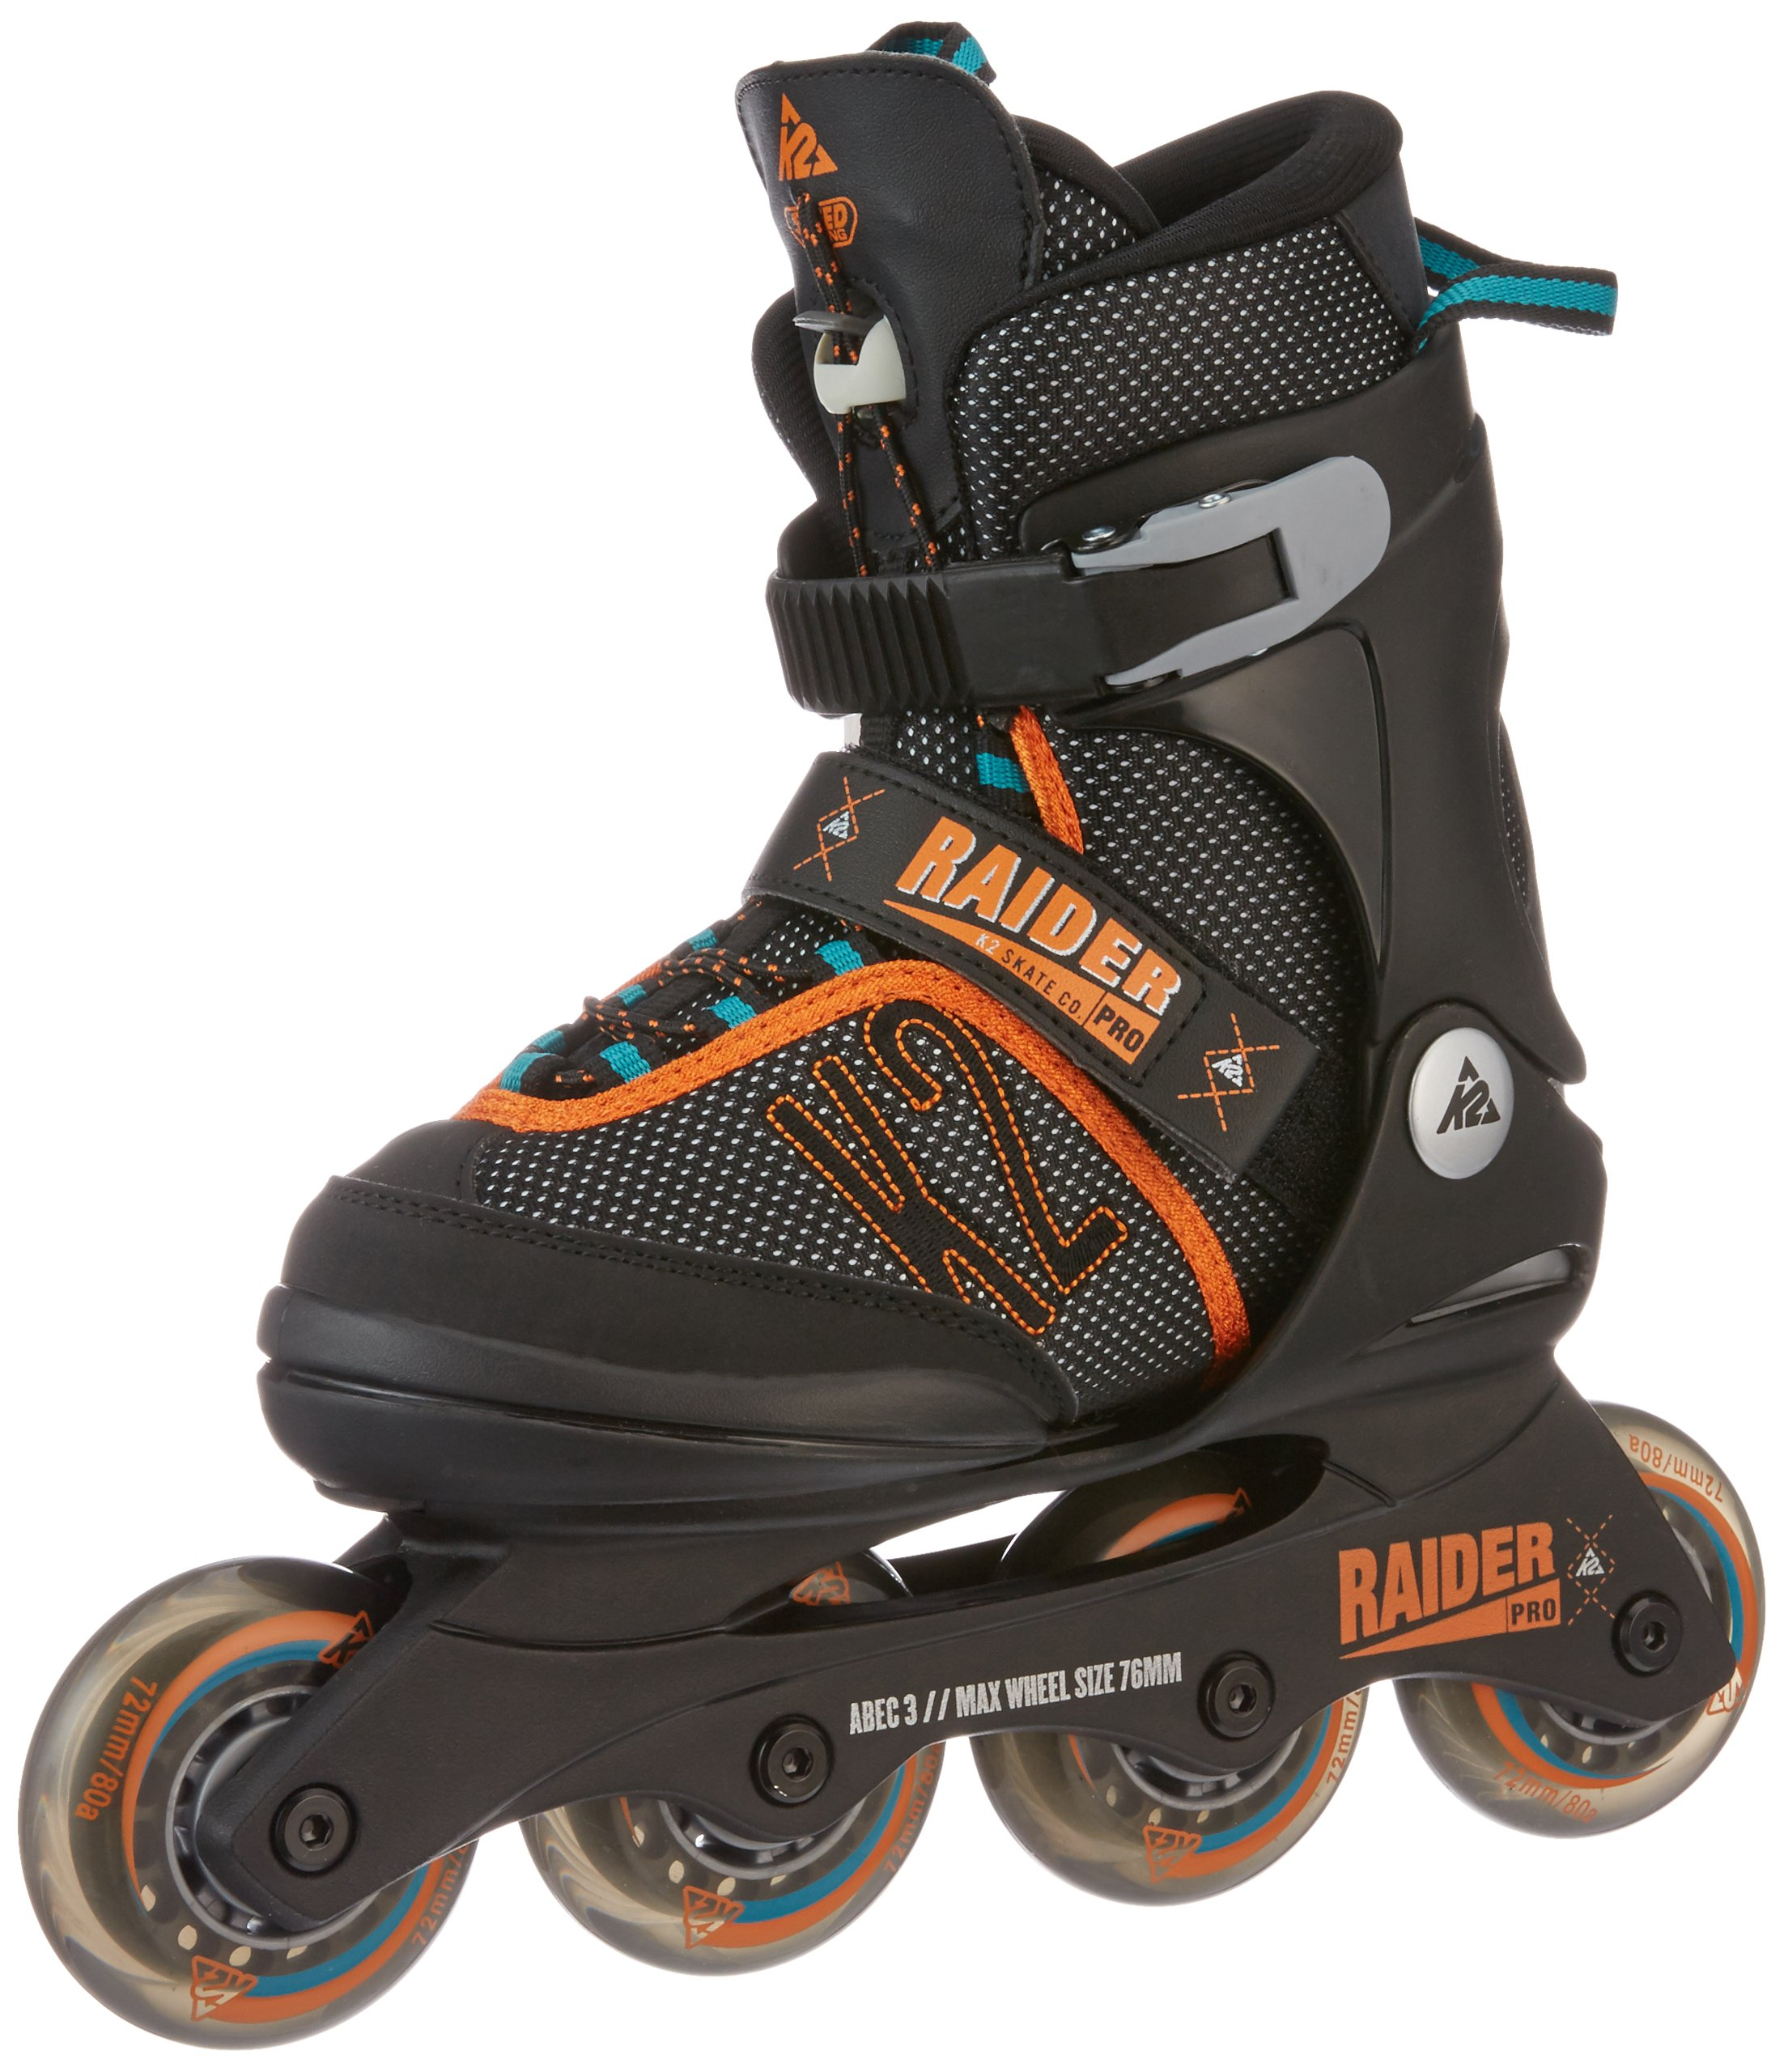 K2 Skate Boy's Raider Pro Pack Inline Skates, Black/Orange, 41945 by K2 Skate